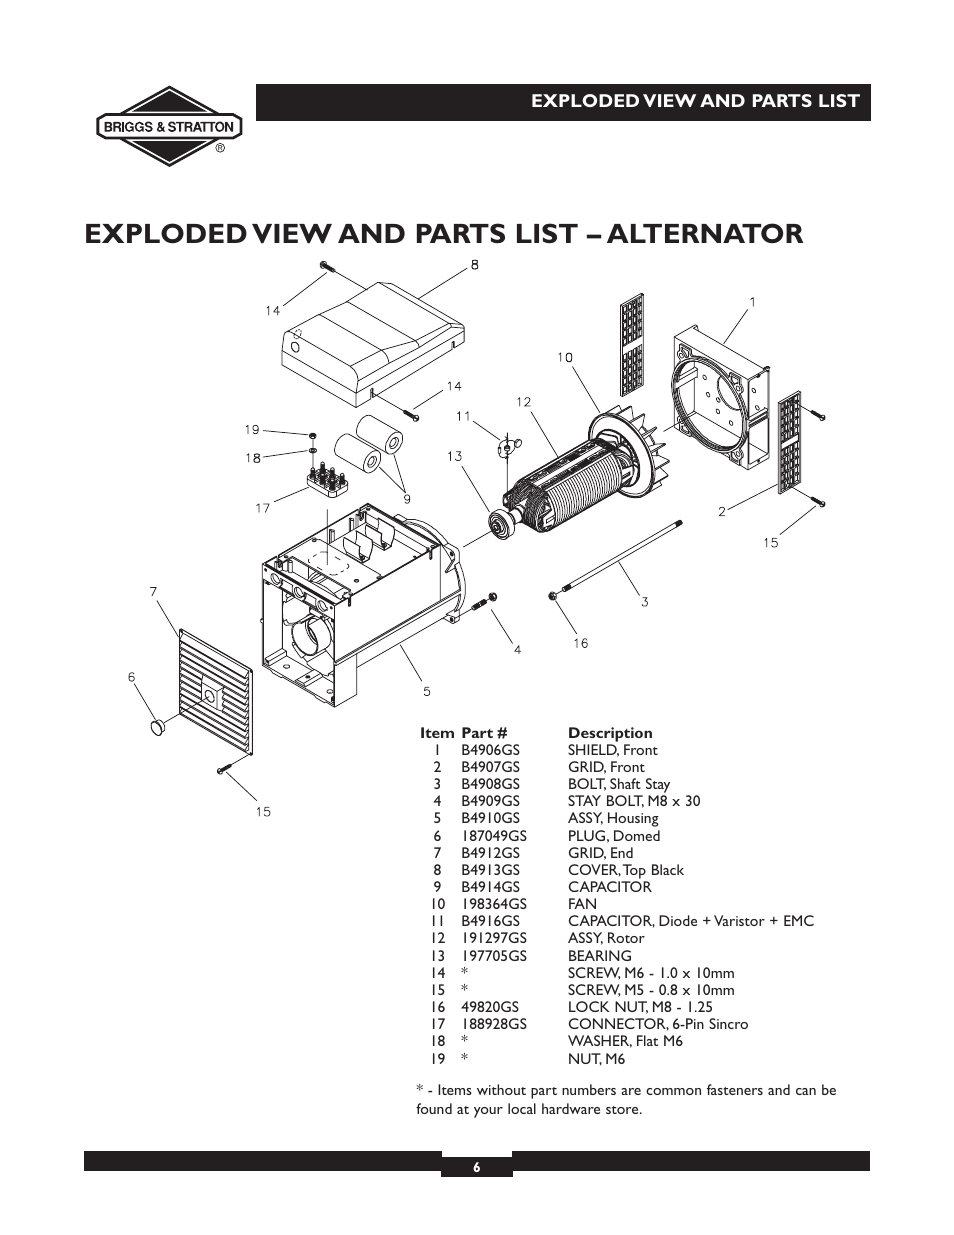 Exploded view and parts list